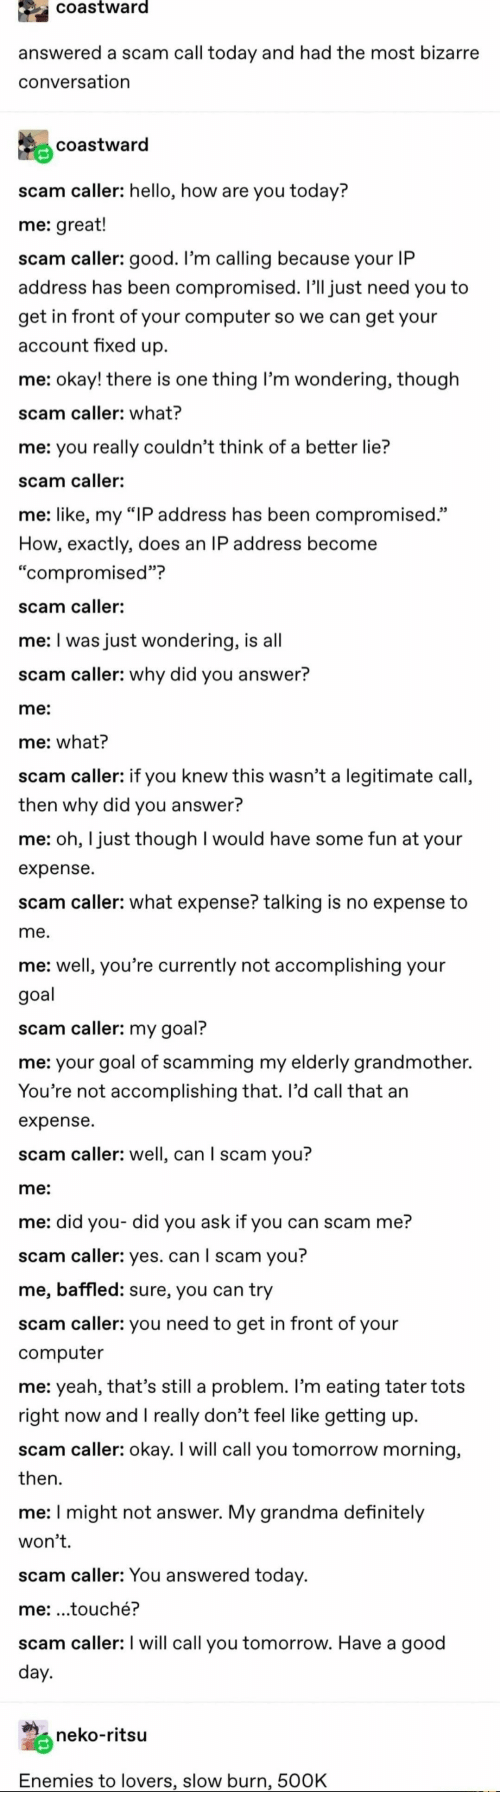 "Touche: coastward  answered a scam call today and had the most bizarre  conversation  coastward  scam caller: hello, how are you today?  me: great!  scam caller: good. I'm calling because your IP  address has been compromised. I'll just need you to  get in front of your computer so we can get your  account fixed up  me: okay! there is one thing I'm wondering, though  scam caller: what?  me: you really couldn't think of a better lie?  scam caller:  me: like, my ""IP address has been compromised.""  How, exactly, does an IP address become  ""compromised""?  scam caller:  me: I was just wondering, is all  scam caller: why did you answer?  me:  me: what?  scam caller: if you knew this wasn't a legitimate call,  then why did you answer?  me: oh, I just though I would have some fun at your  expense  scam caller: what expense? talking is no expense to  me.  me: well, you're currently not accomplishing your  goal  scam caller: my goal?  me: your goal of scamming my elderly grandmother.  You're not accomplishing that. Il'd call that an  expense  scam caller: well, can I scam you?  me:  me: did you- did you ask if you can scam me?  scam caller: yes. can I scam you?  me, baffled: sure, you can try  scam caller: you need to get in front of your  computer  me: yeah, that's still a problem. I'm eating tater tots  right now andI really don't feel like getting up  scam caller: okay. I will call you tomorrow morning,  then  me: I might not answer. My grandma definitely  won't.  scam caller: You answered today.  me: .touché?  scam caller: I will call you tomorrow. Have a good  day.  neko-ritsu  Enemies to lovers, slow burn, 500K"